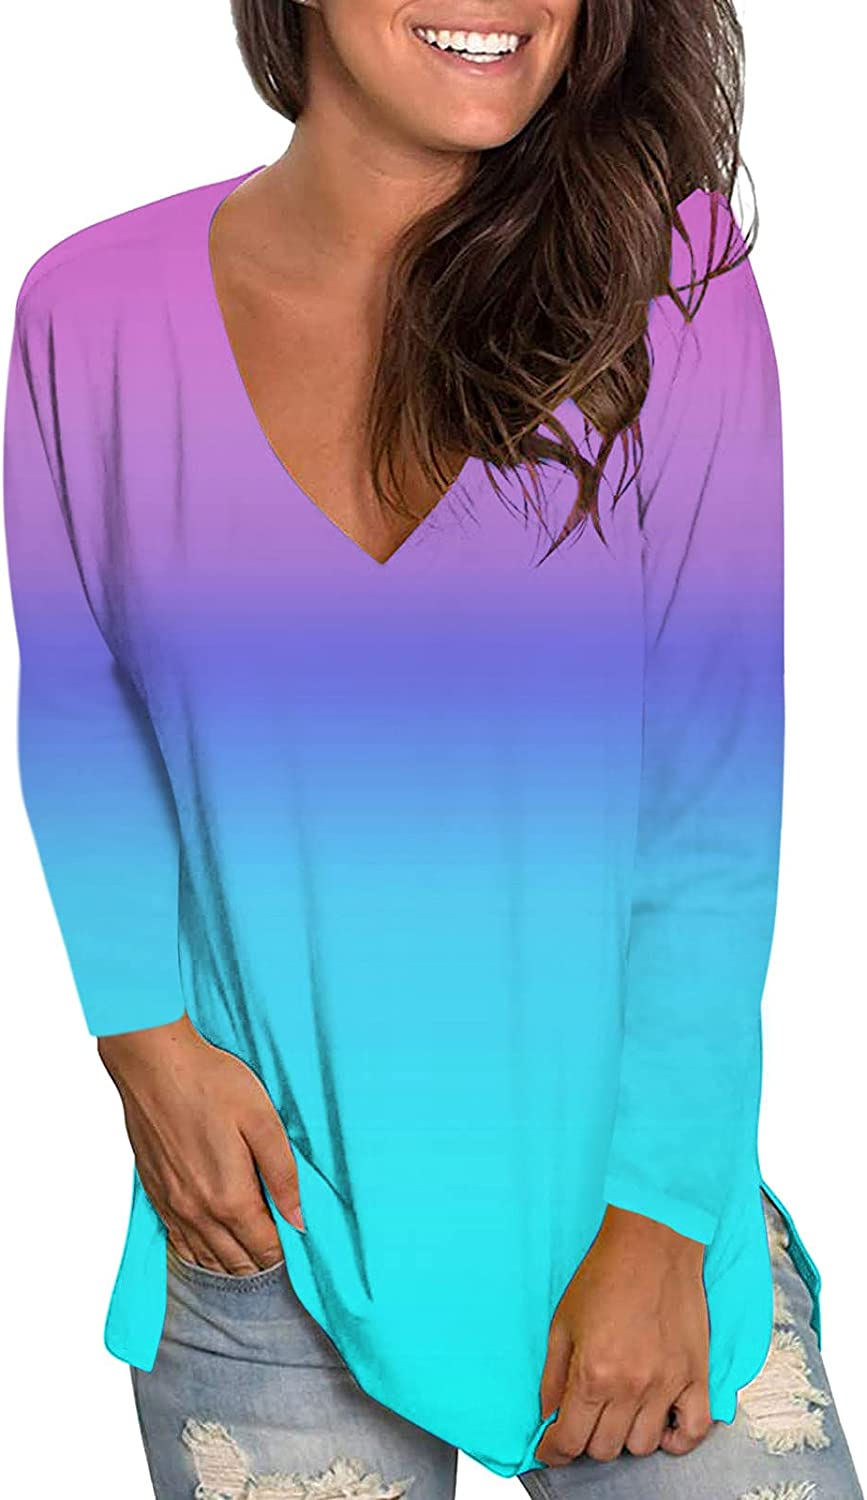 ONHUON Womens Tops,Womens Long Sleeve Shirts Cute Printed Tshirts Blouse Casual Colorful Gradient Loose Fit Tees